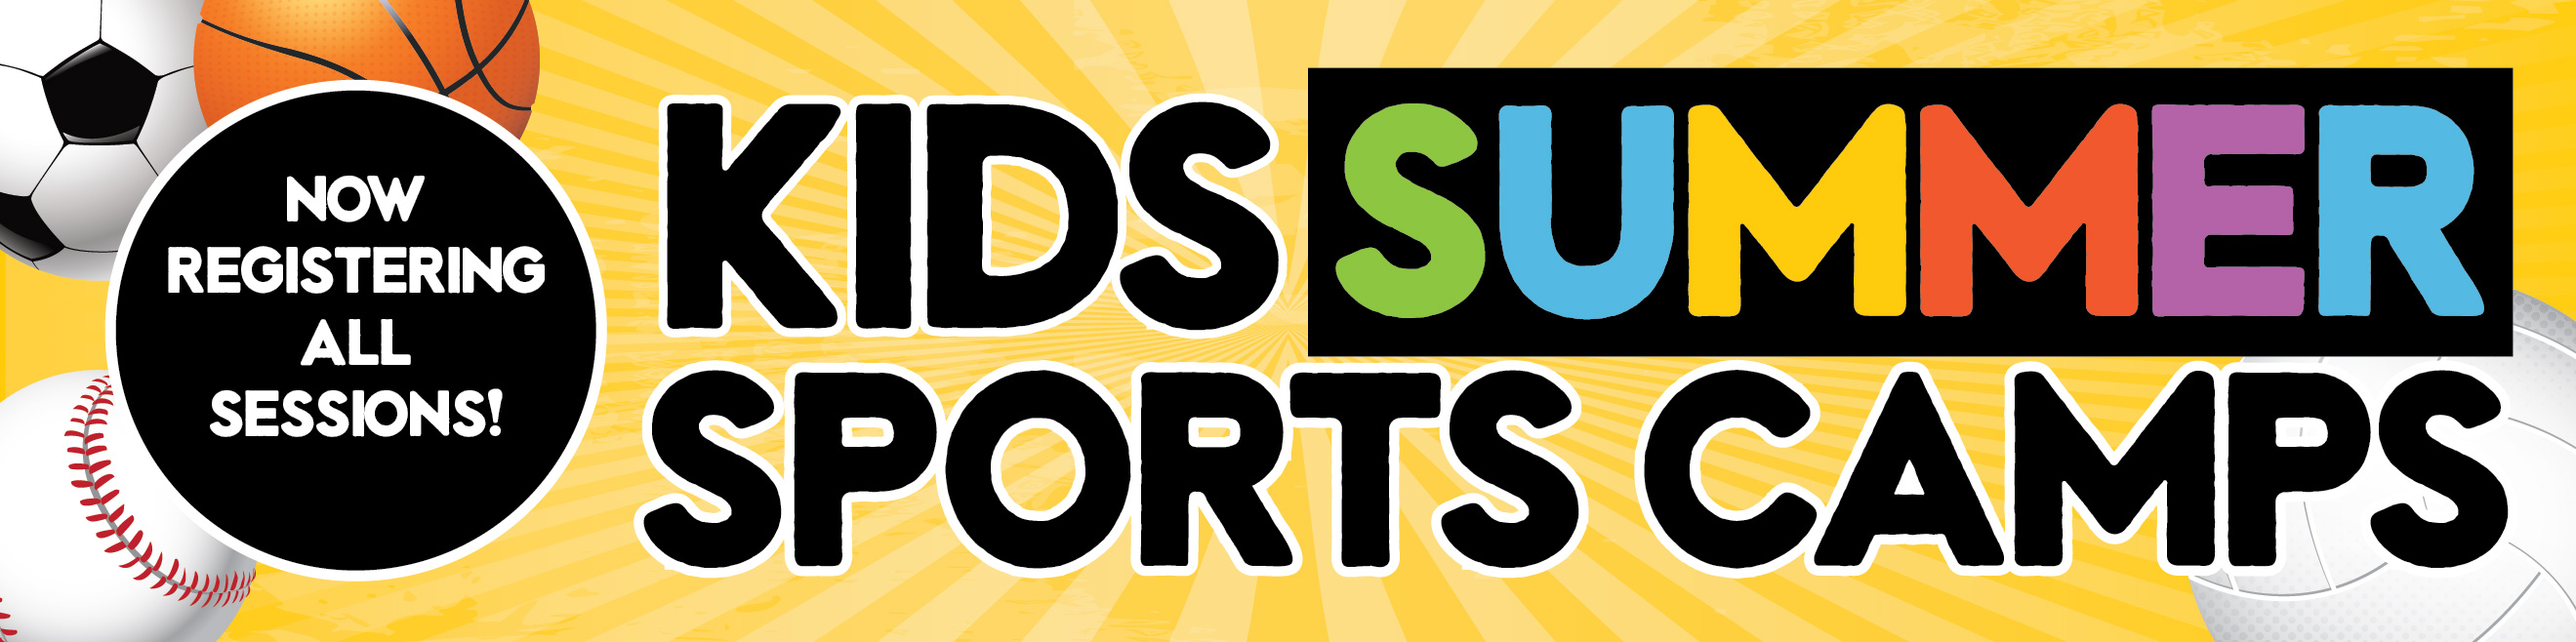 Kids Summer Sports Camps